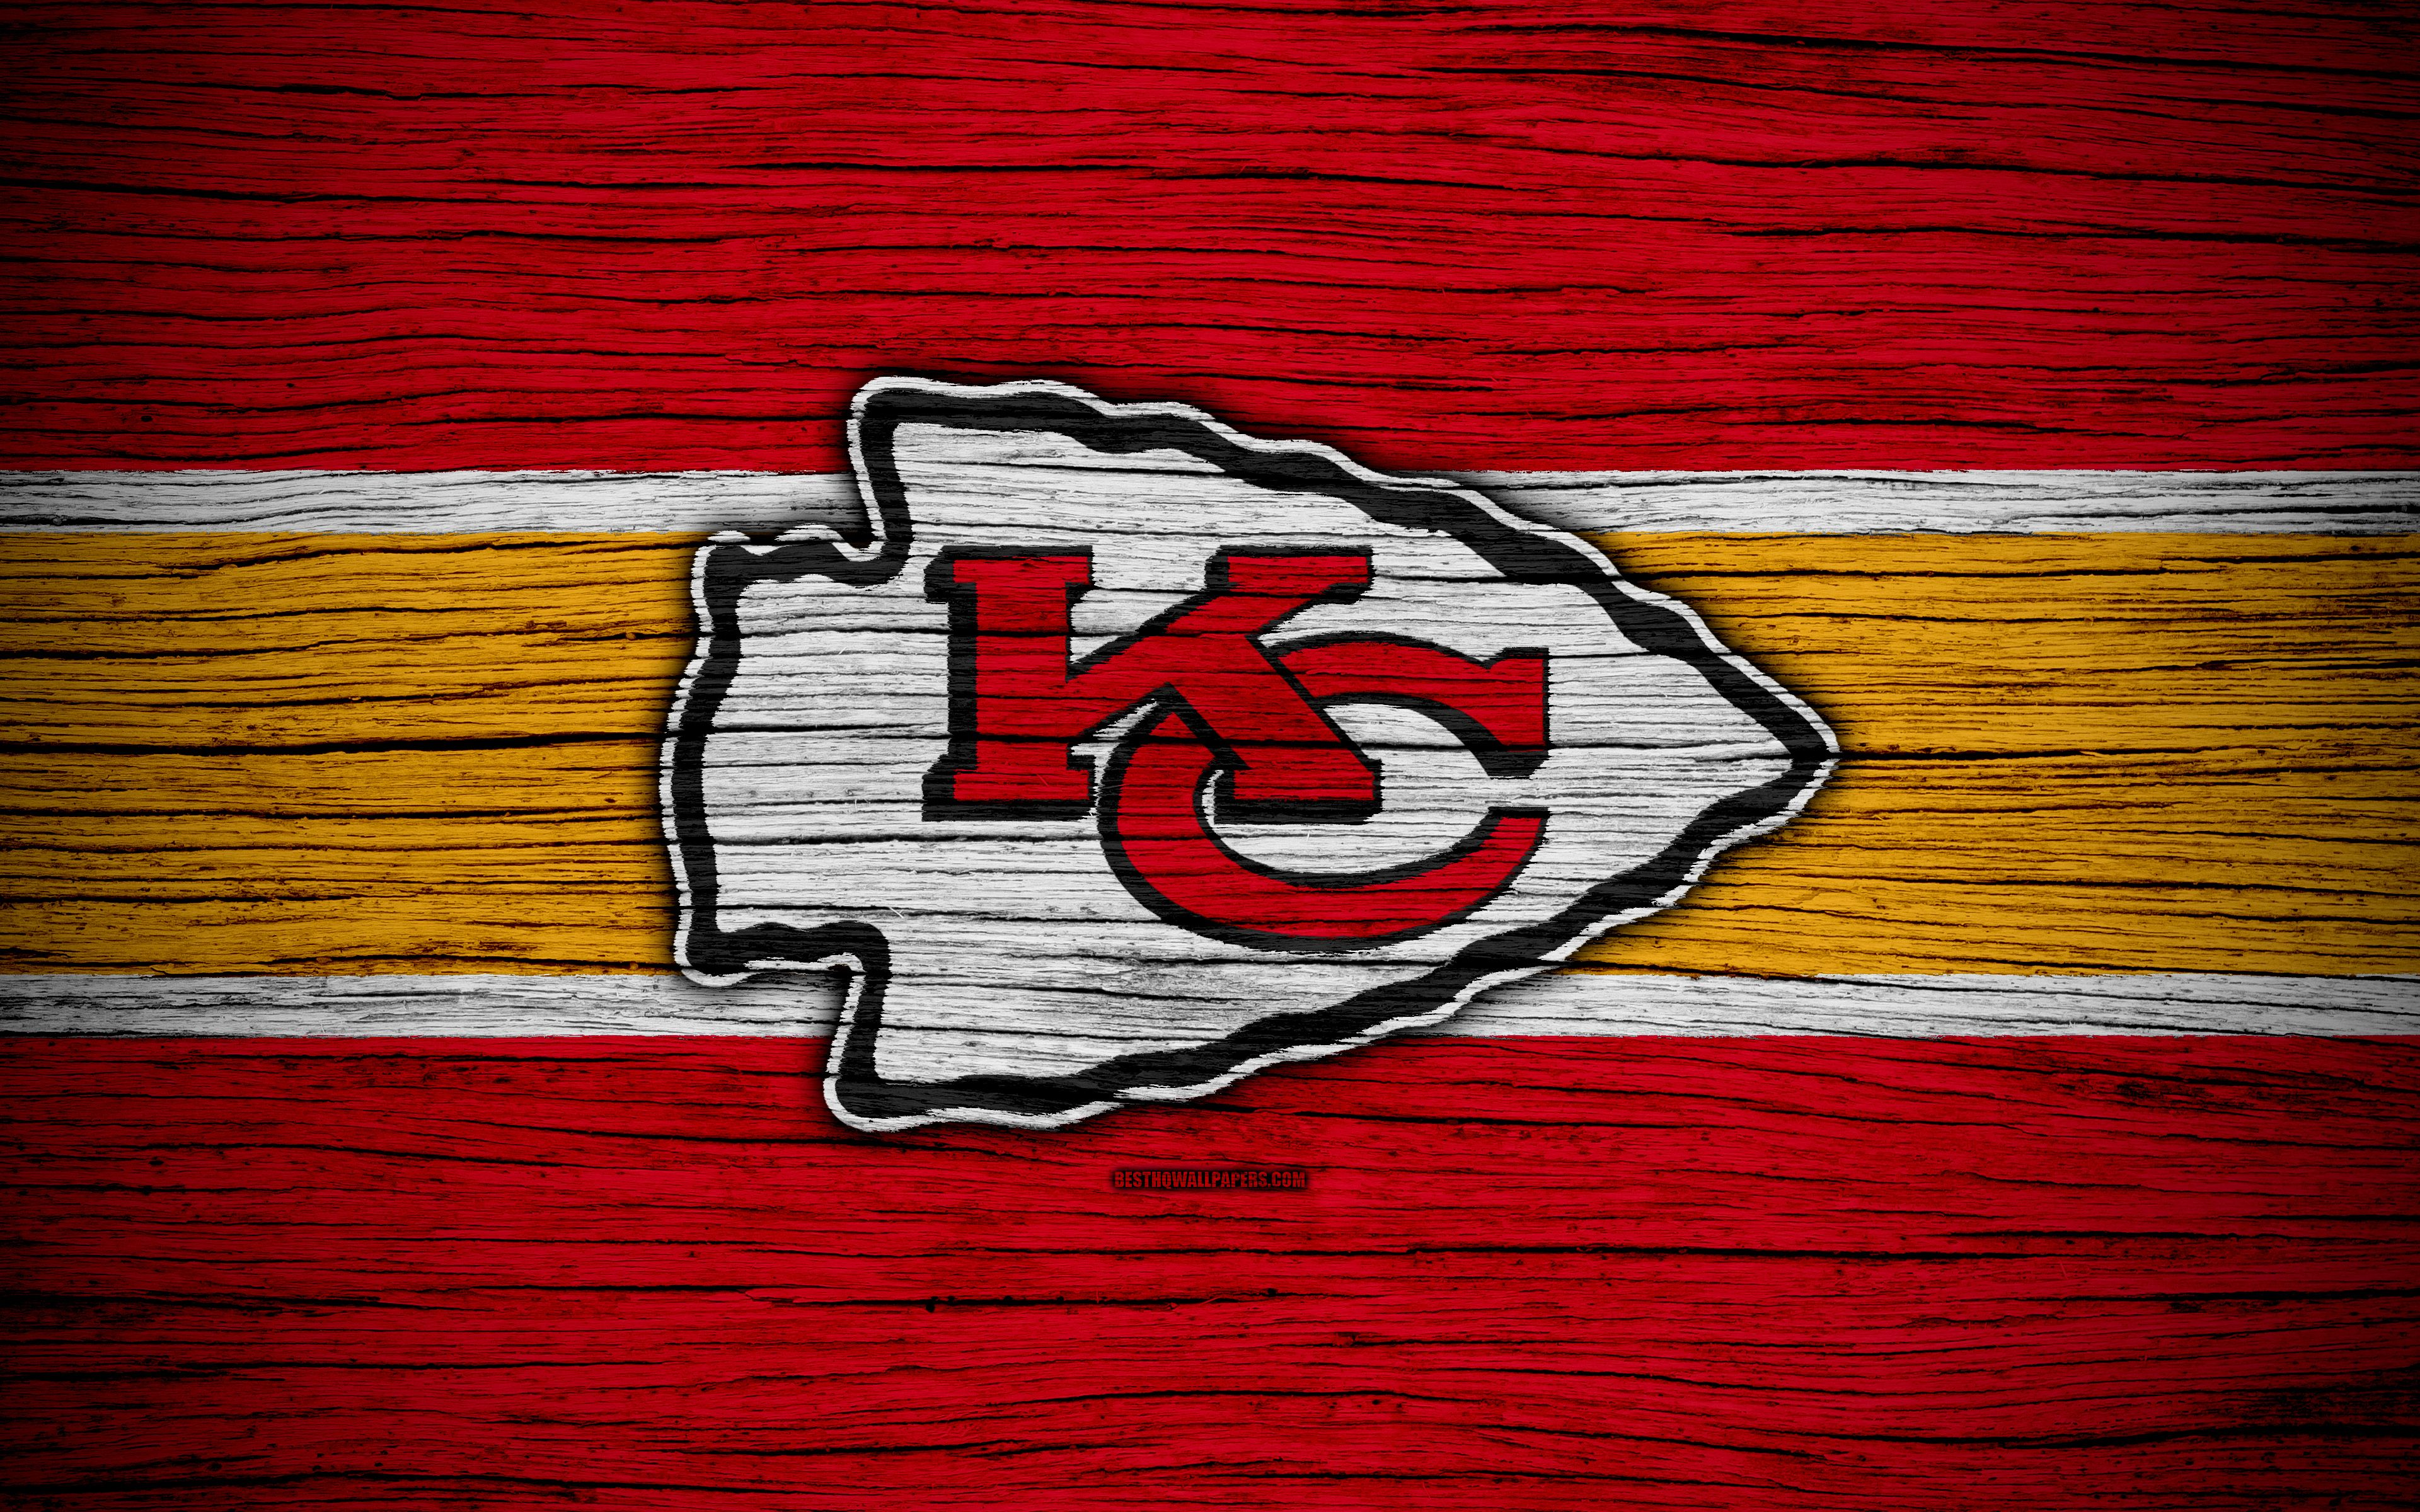 Kansas City Chiefs 4k Wallpapers Top Free Kansas City Chiefs 4k Backgrounds Wallpaperaccess